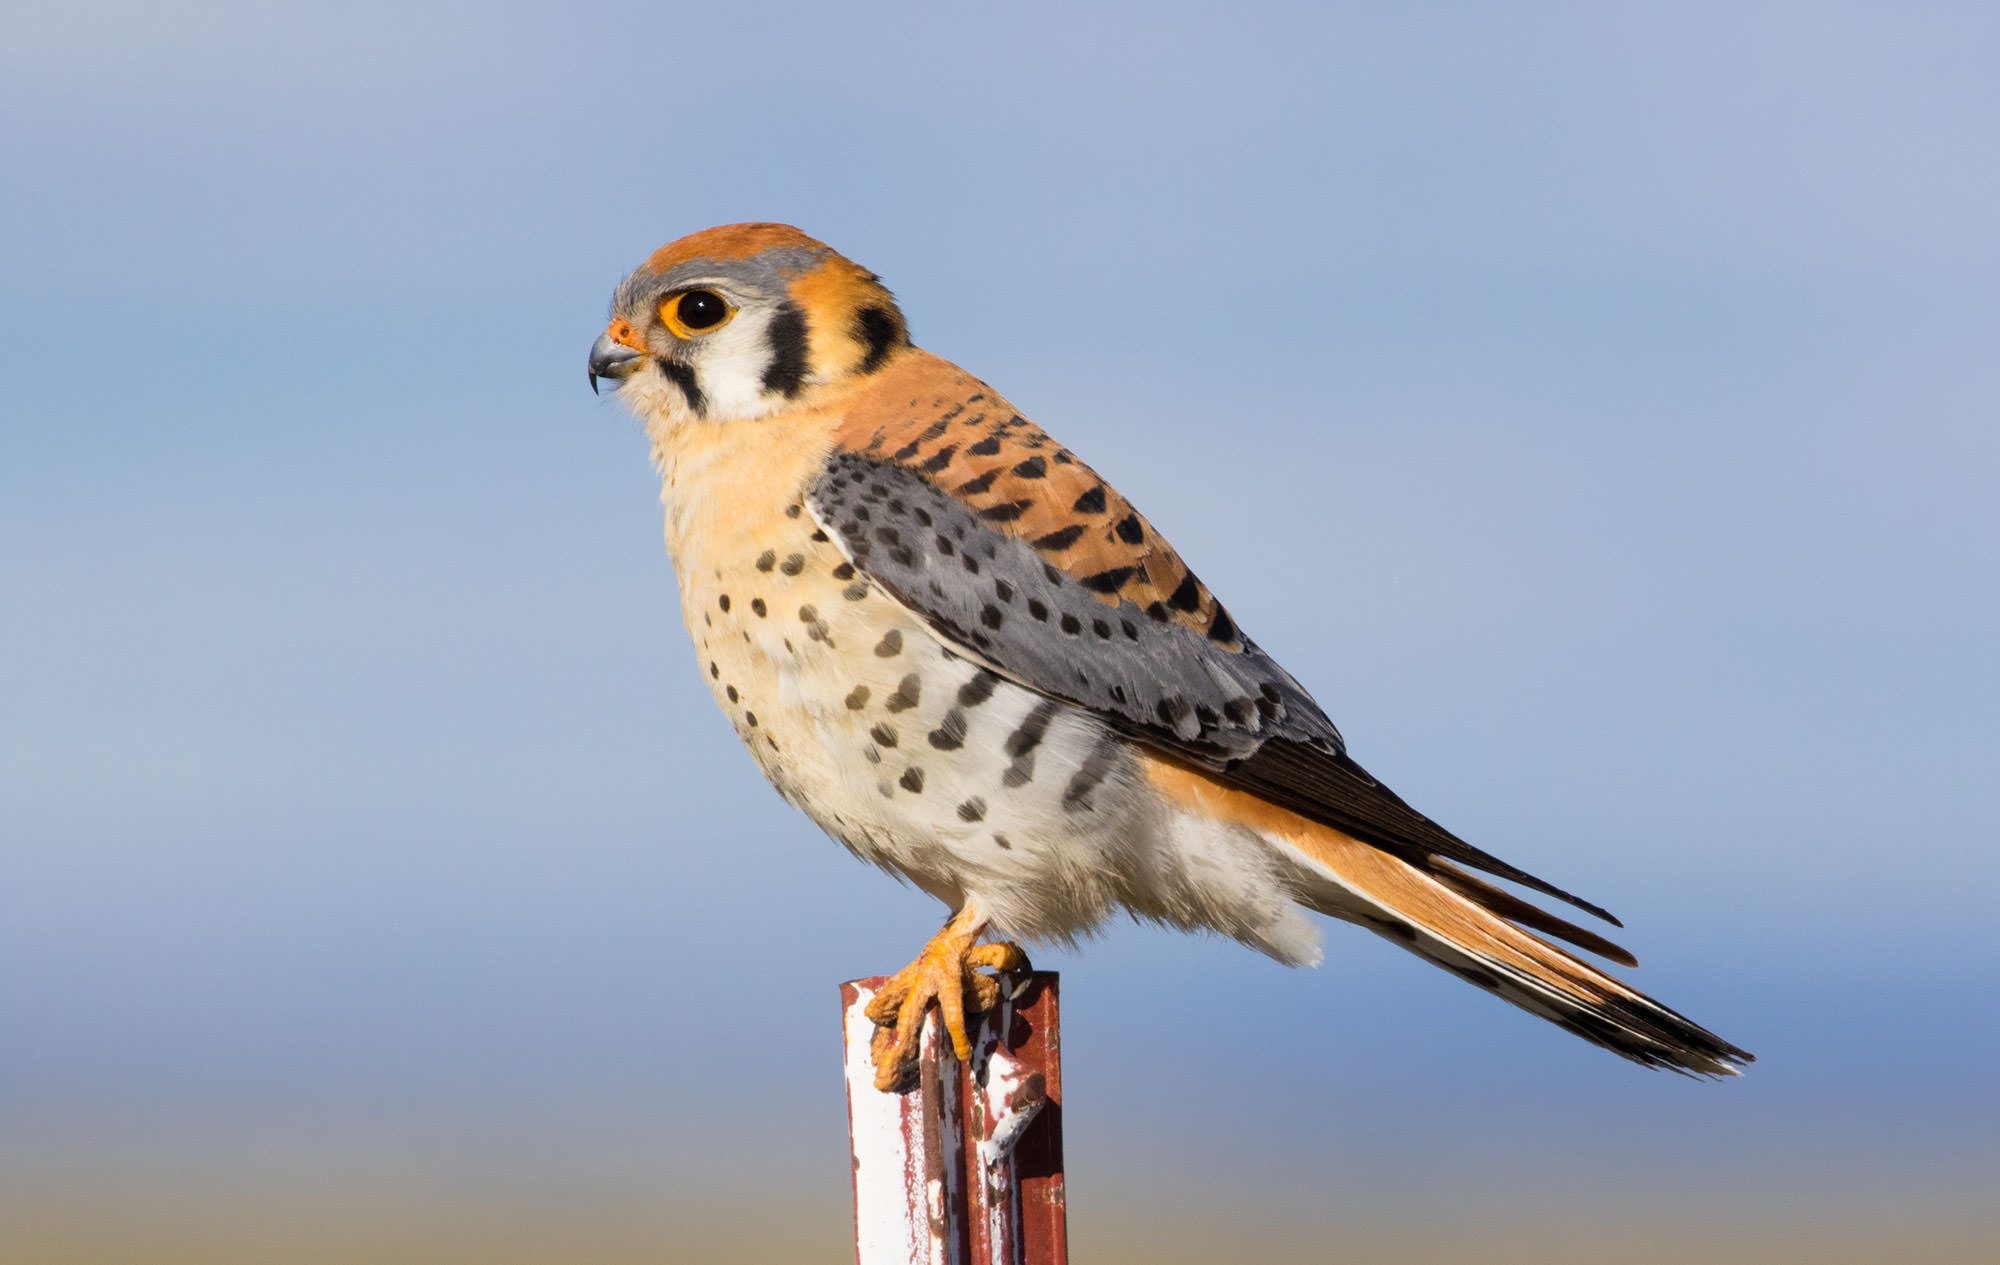 Kestrel at Malheur National Wildlife Refuge